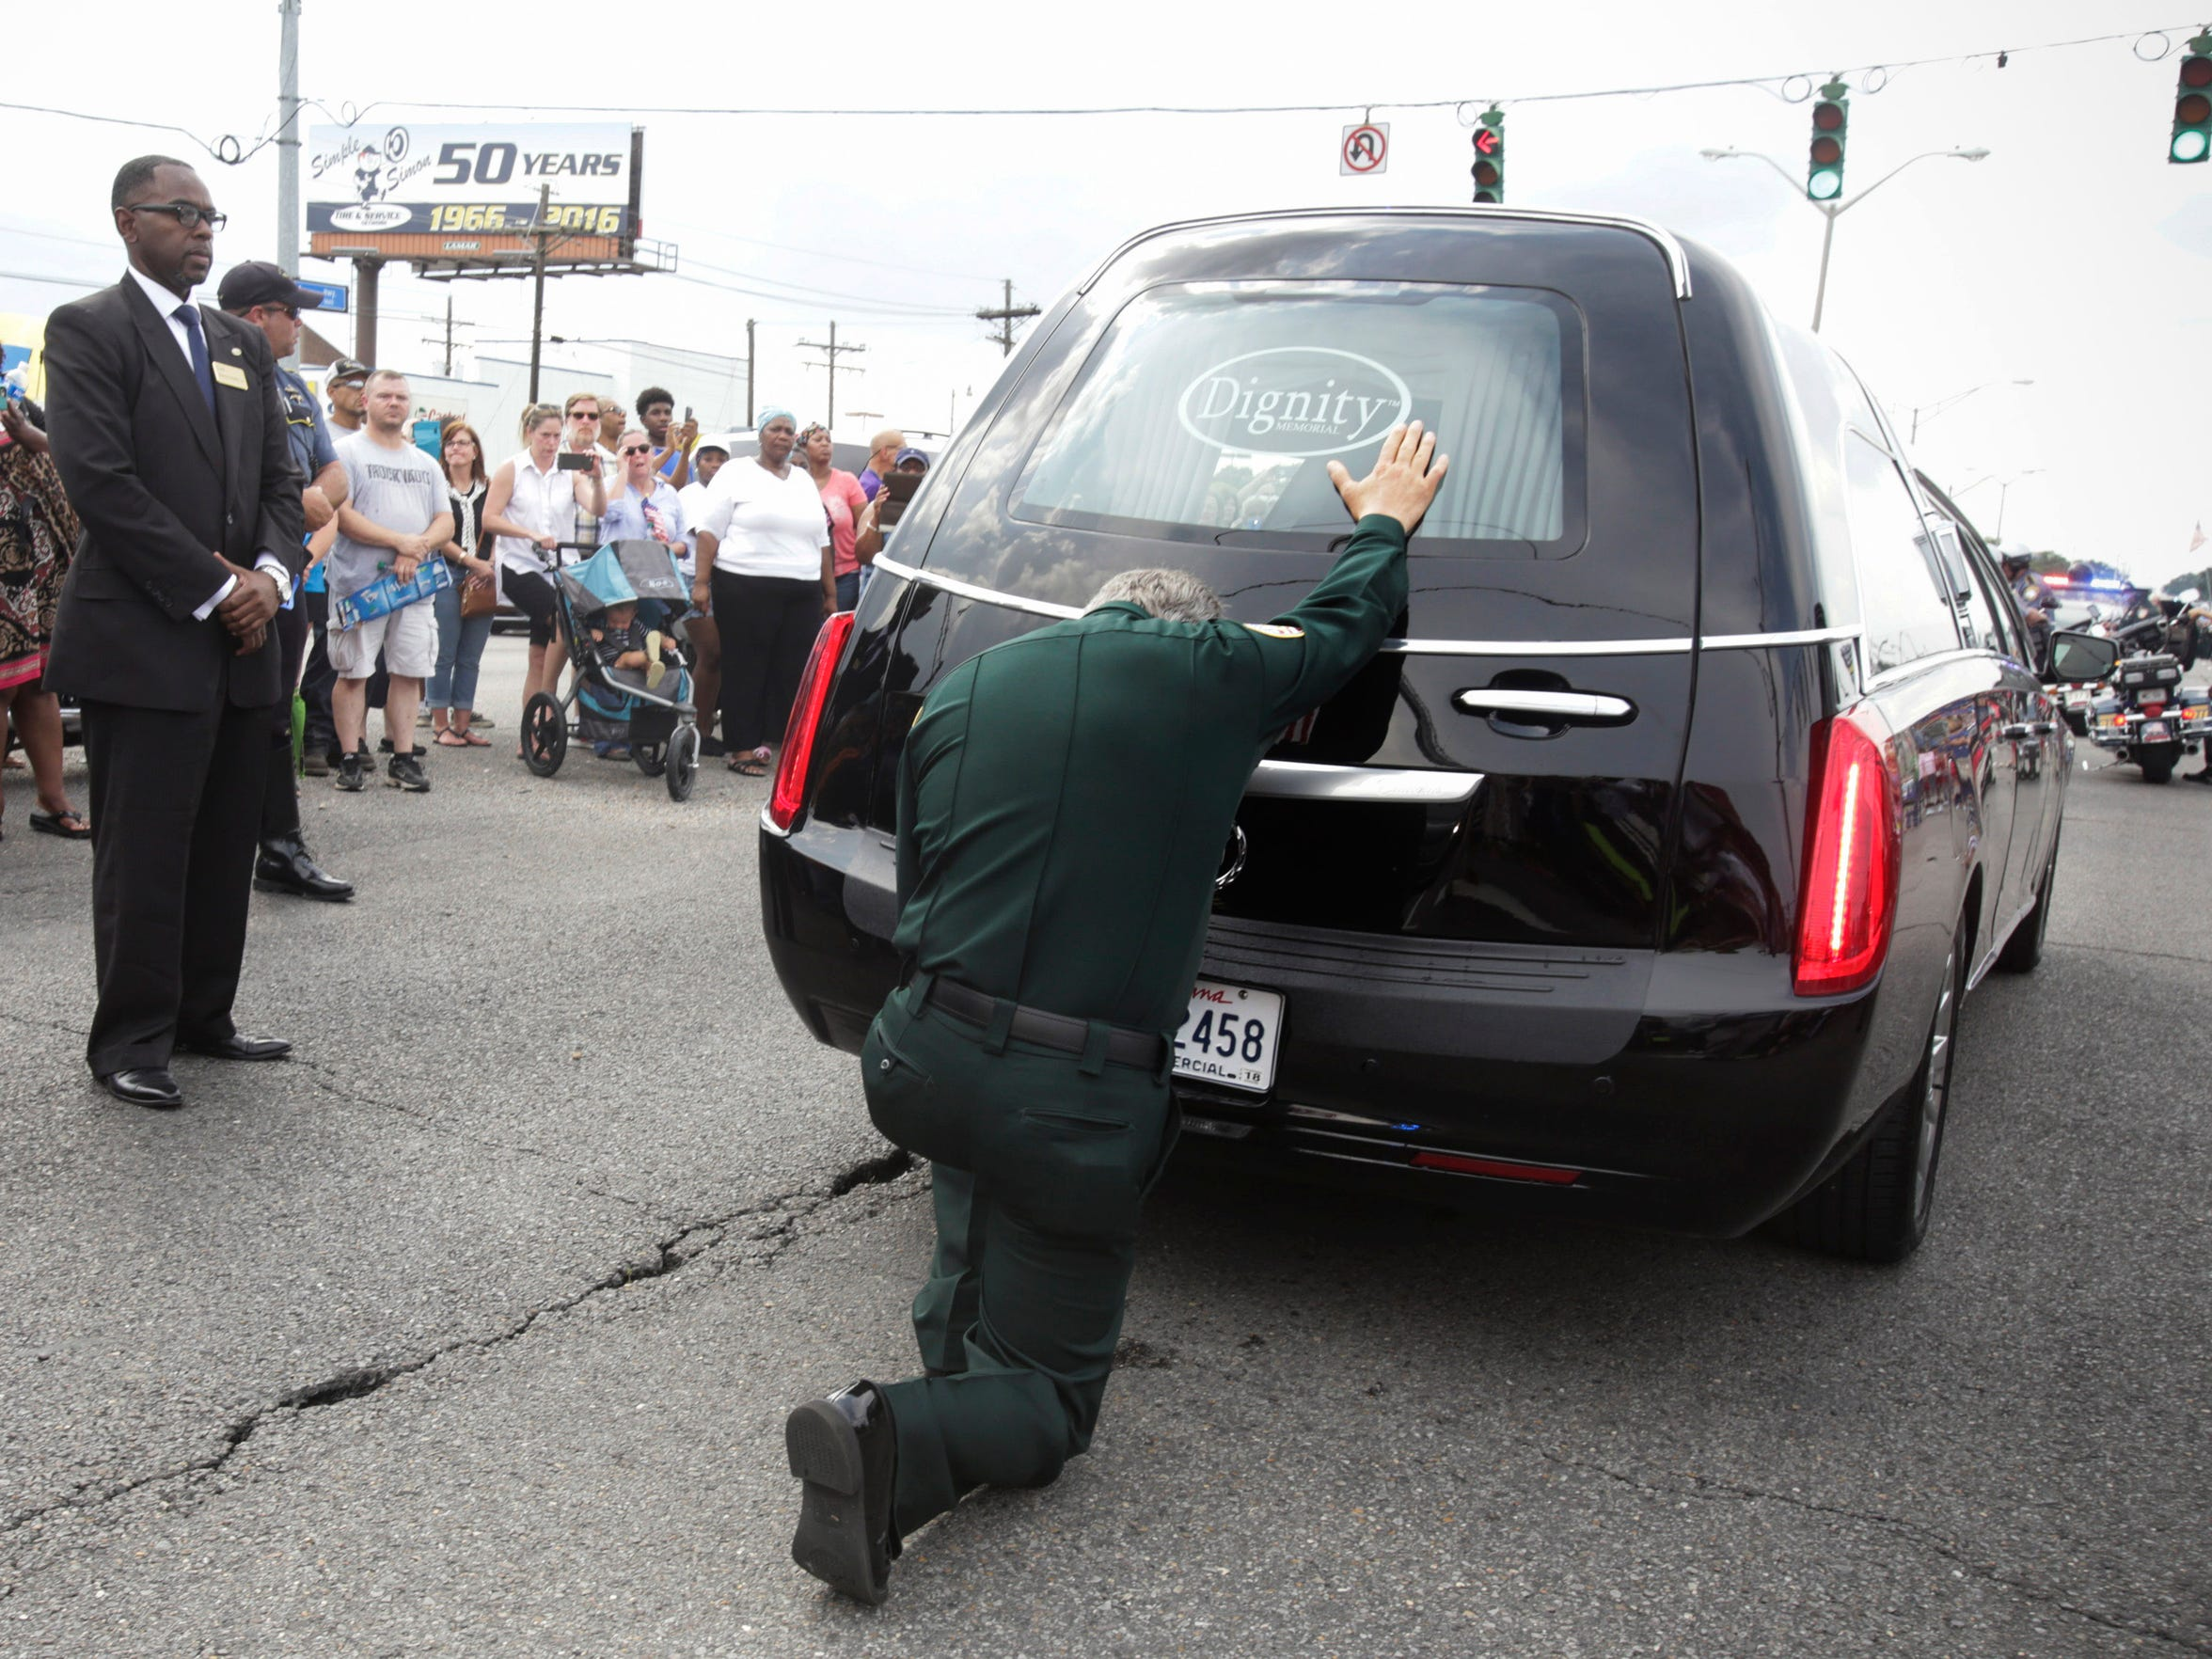 East Baton Rouge Sheriff Sid Gautreaux prays at the hearse carrying his deputy Brad Garafola- one of three Baton Rouge law enforcement officers killed in a July 17 shootout- near the site of the shooting in Baton Rouge July 23.